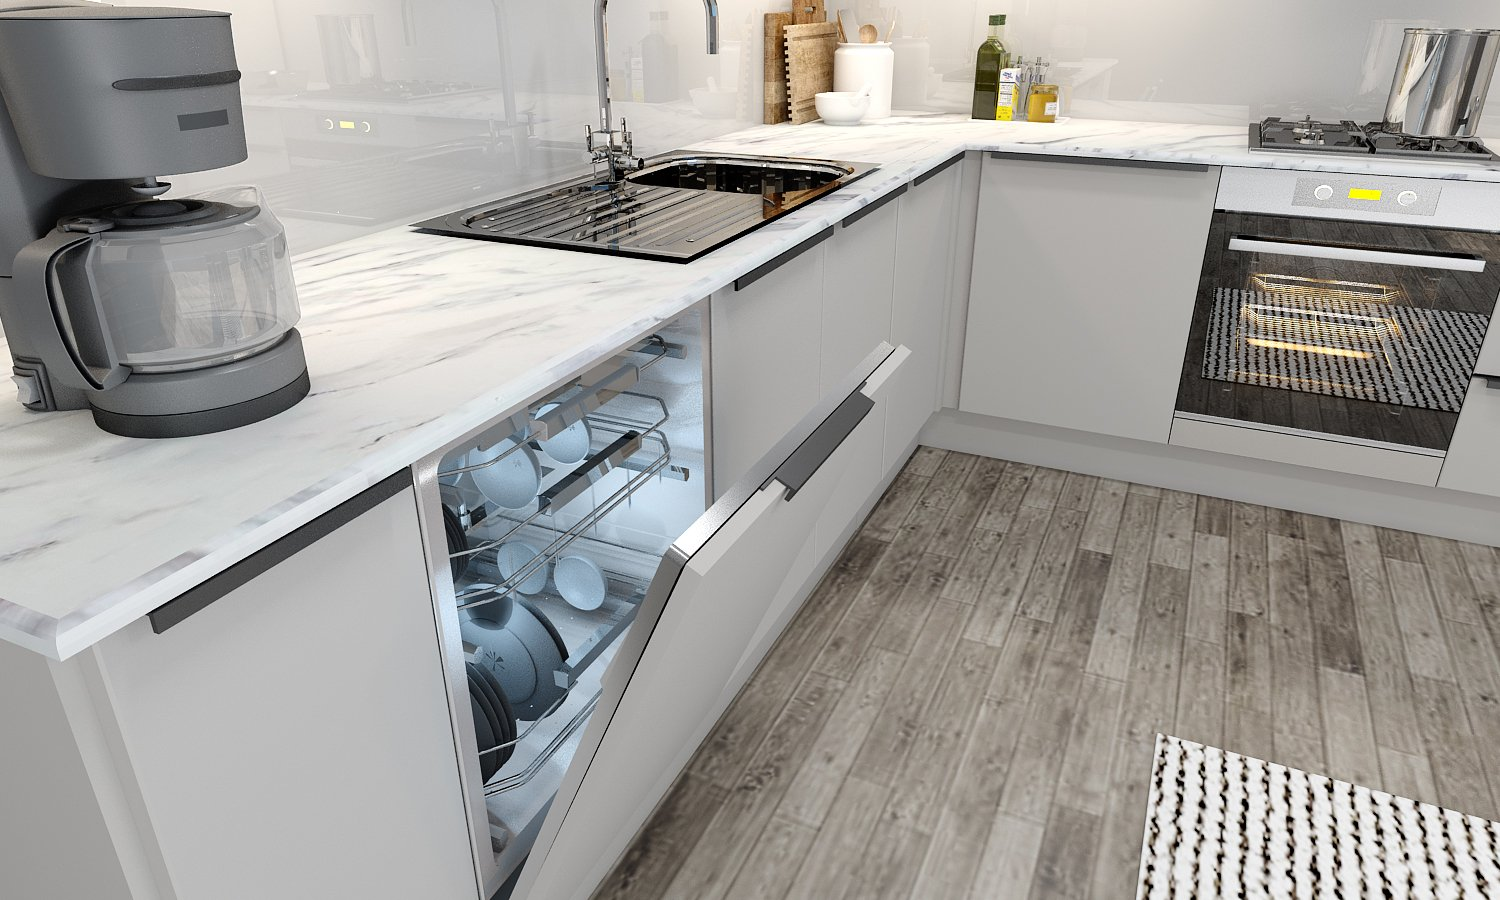 10ft X 10ft Kitchen With Profile Handle in White Matt